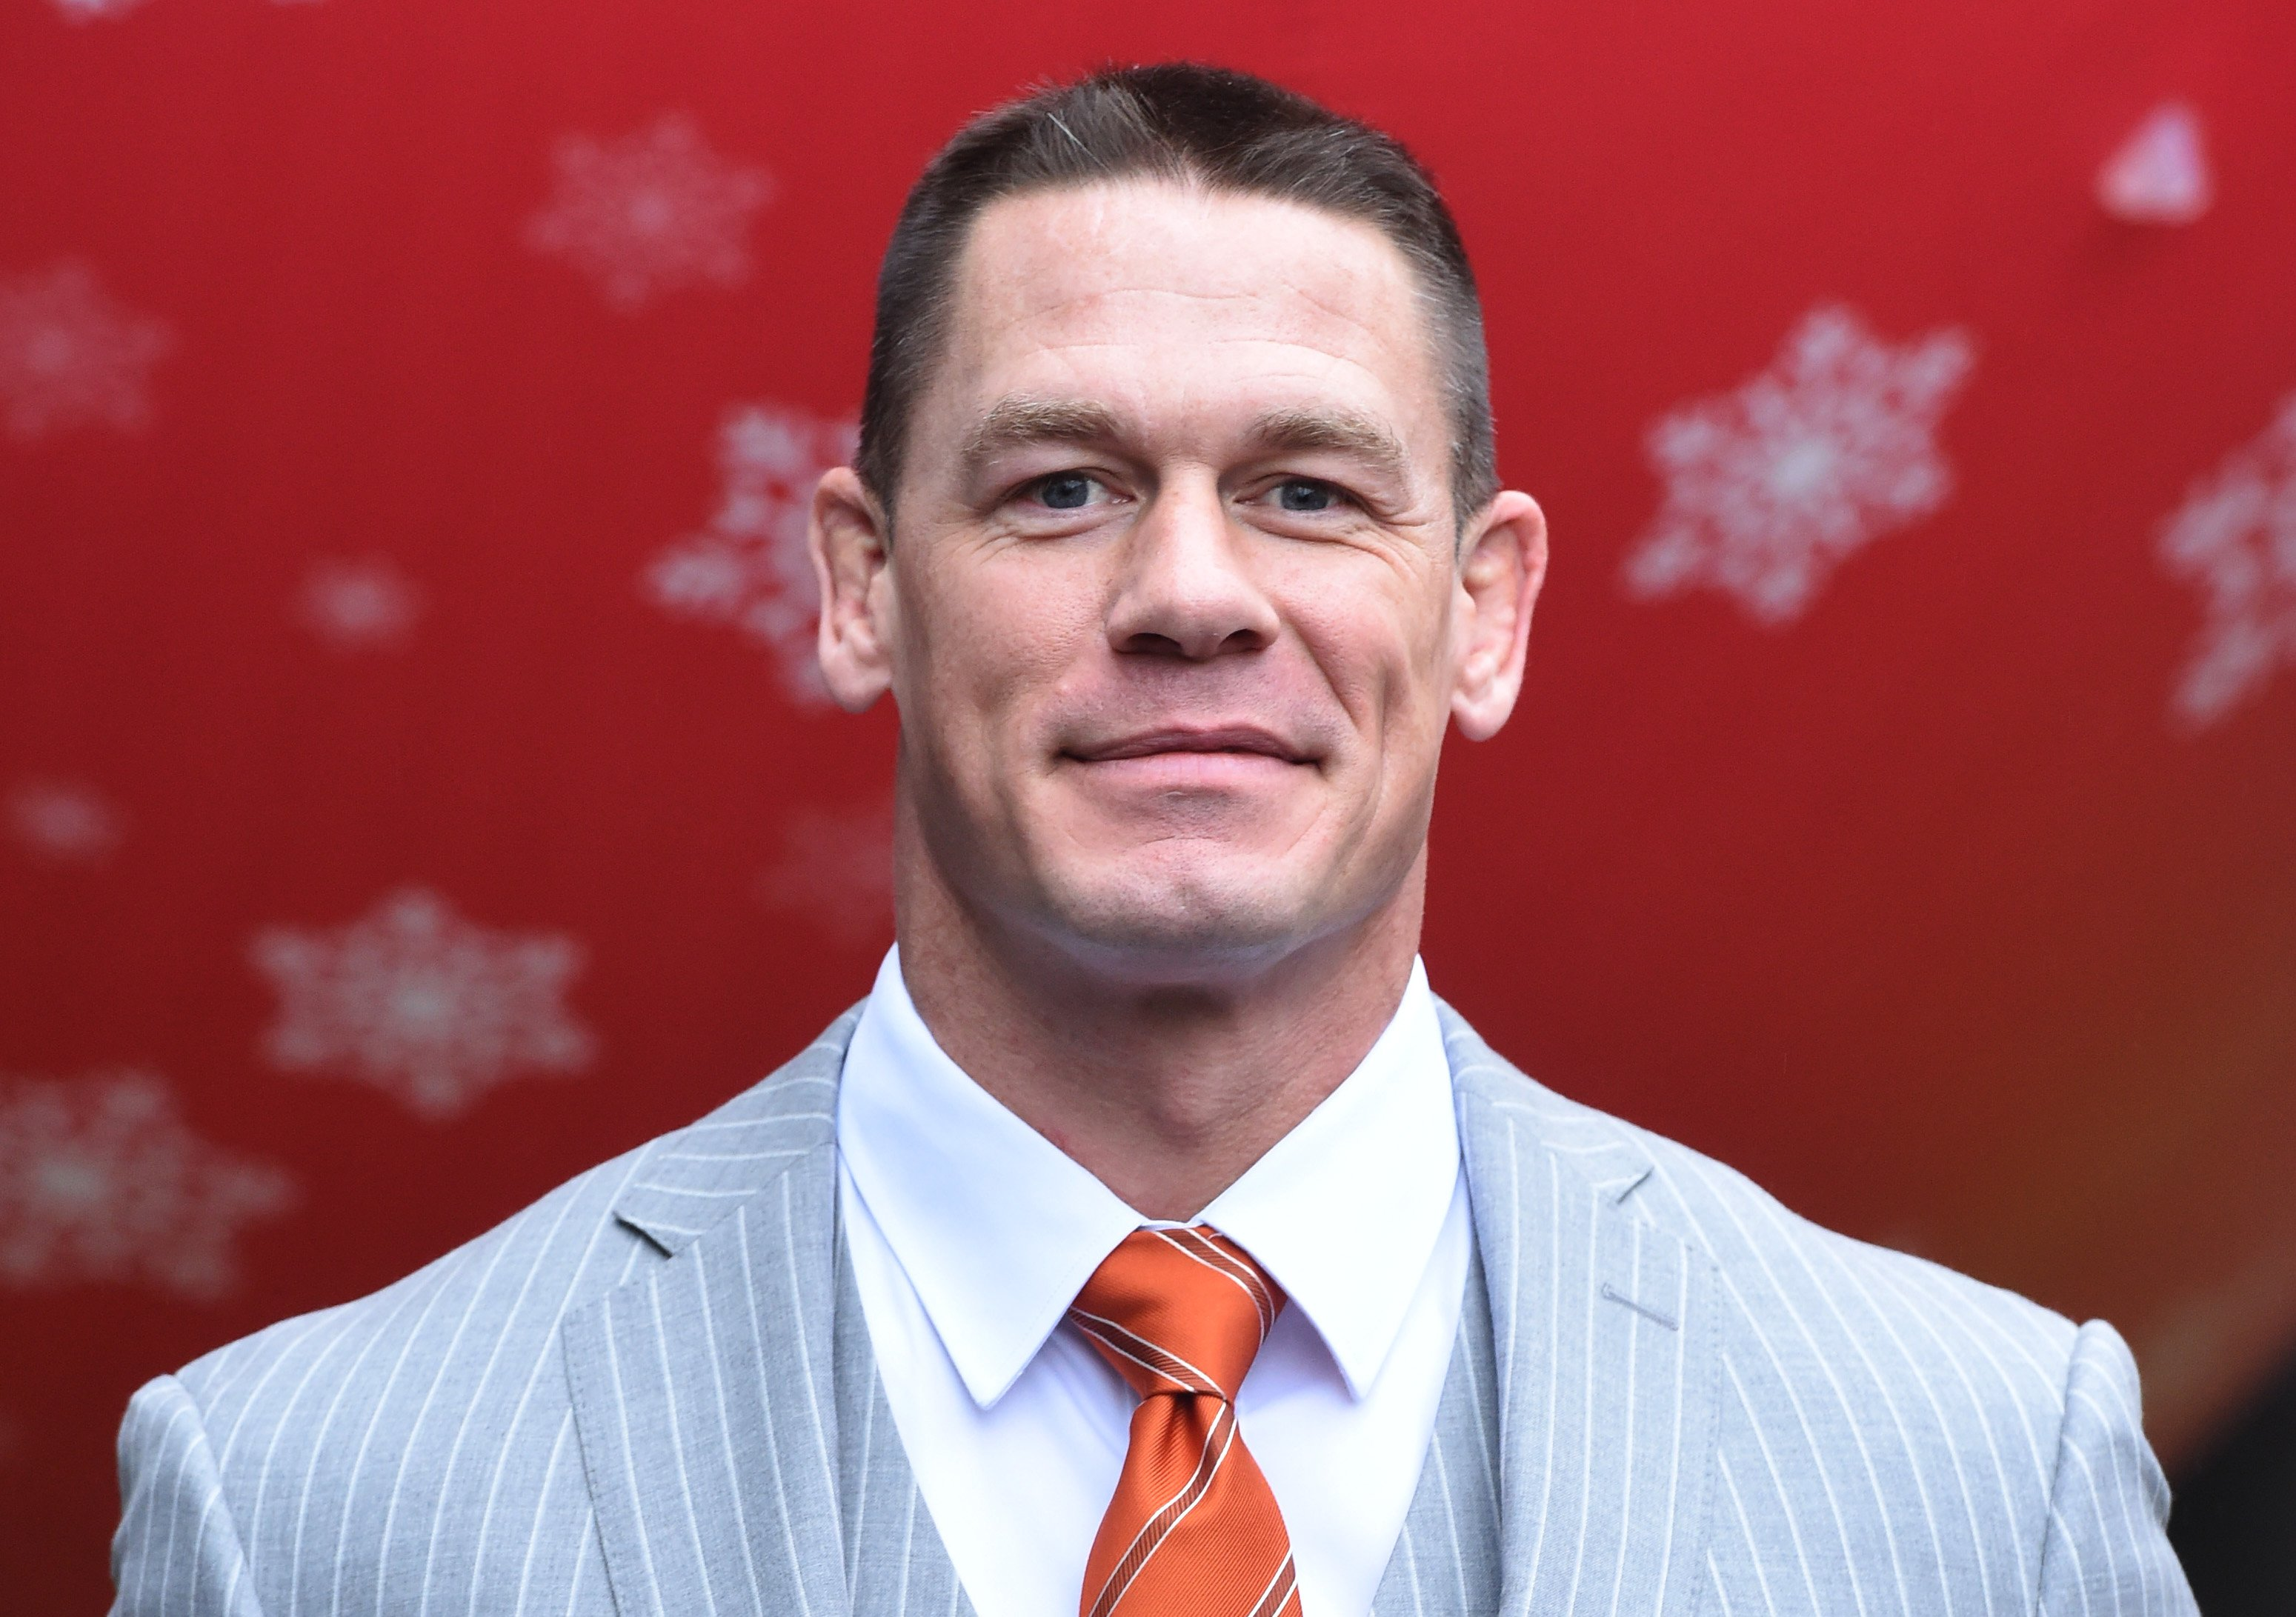 John Cena attends the 'Ferdinand' special screening at BFI Southbank on December 3, 2017 in London, England | Photo: Getty Images